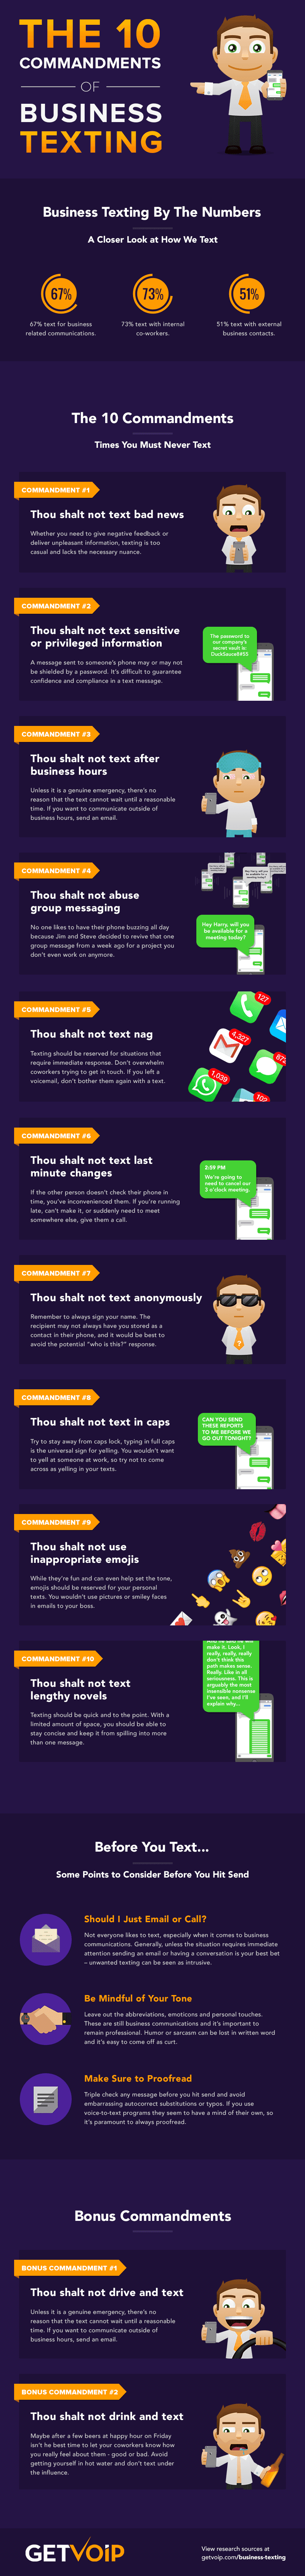 The 10 Commandments of Business Texting